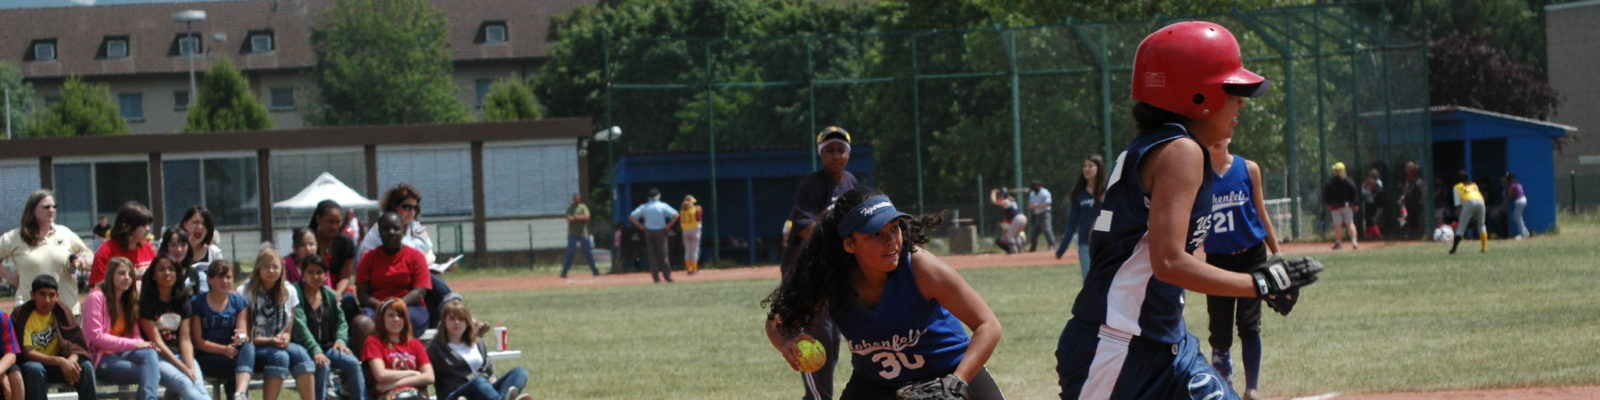 """Junior Girl's Softball Championship"" by heraldpost"